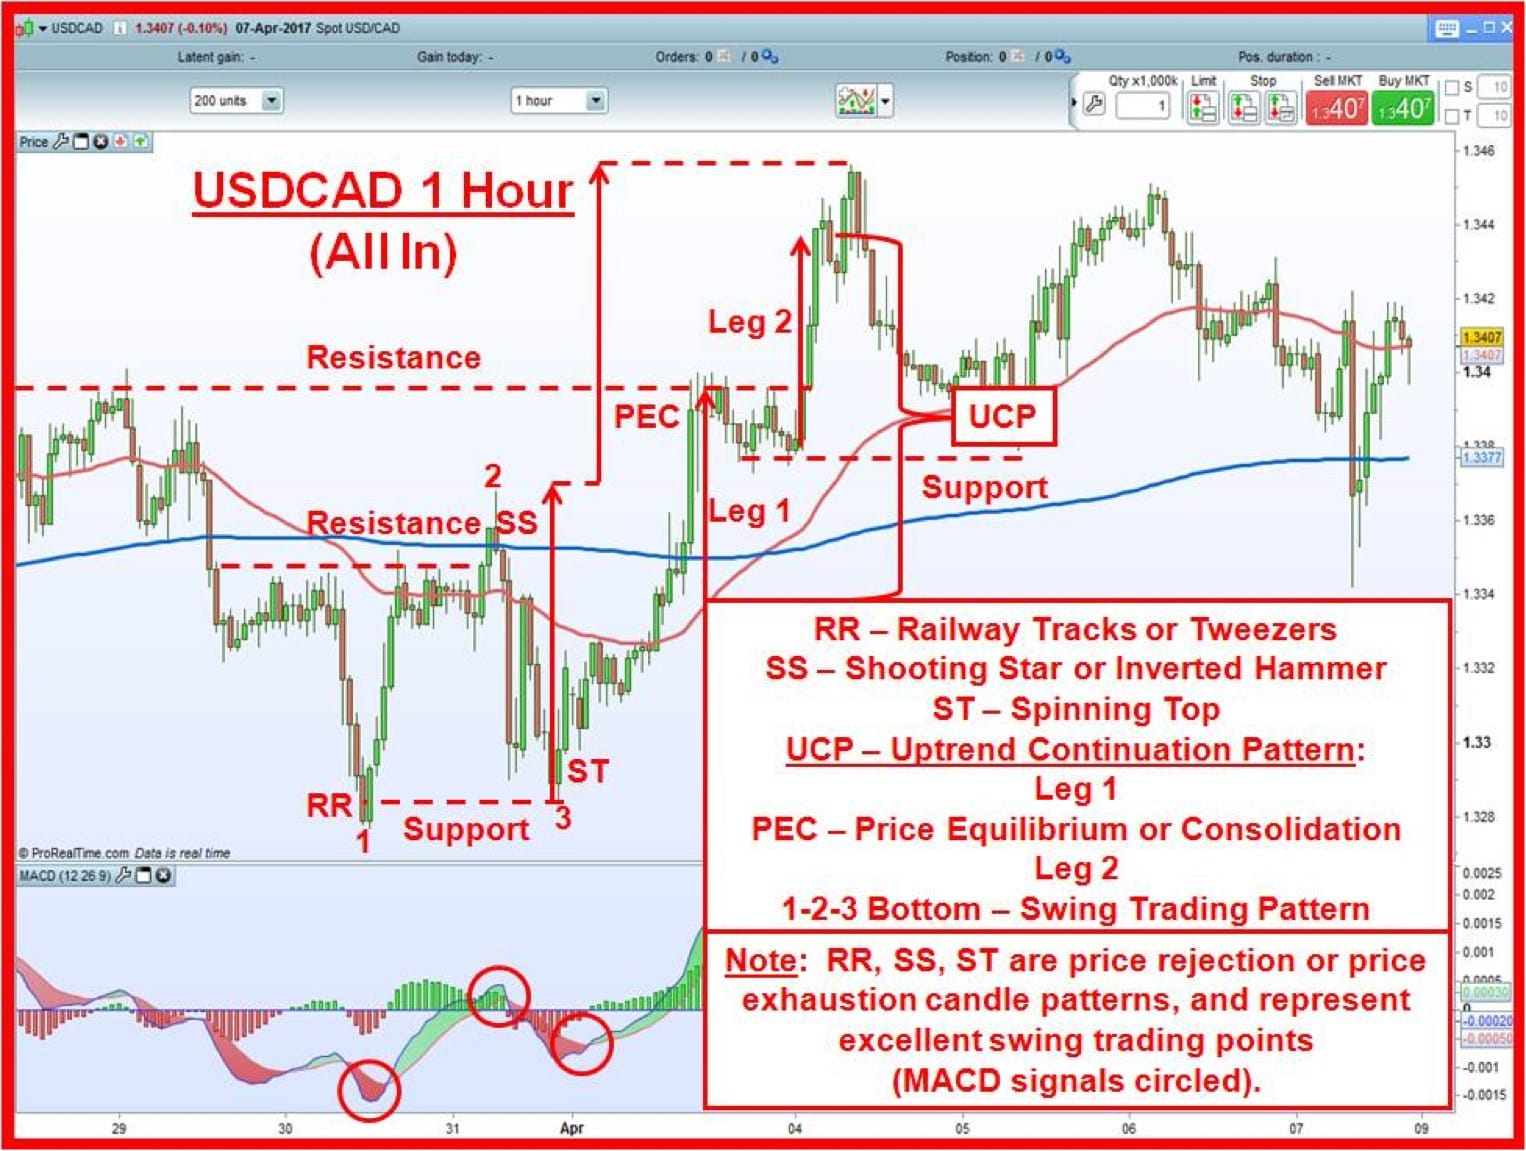 USDCAD 1 hour chart with 1-2-3 bottom, support & resistance dotted lines, 3 candles, & UCP pattern